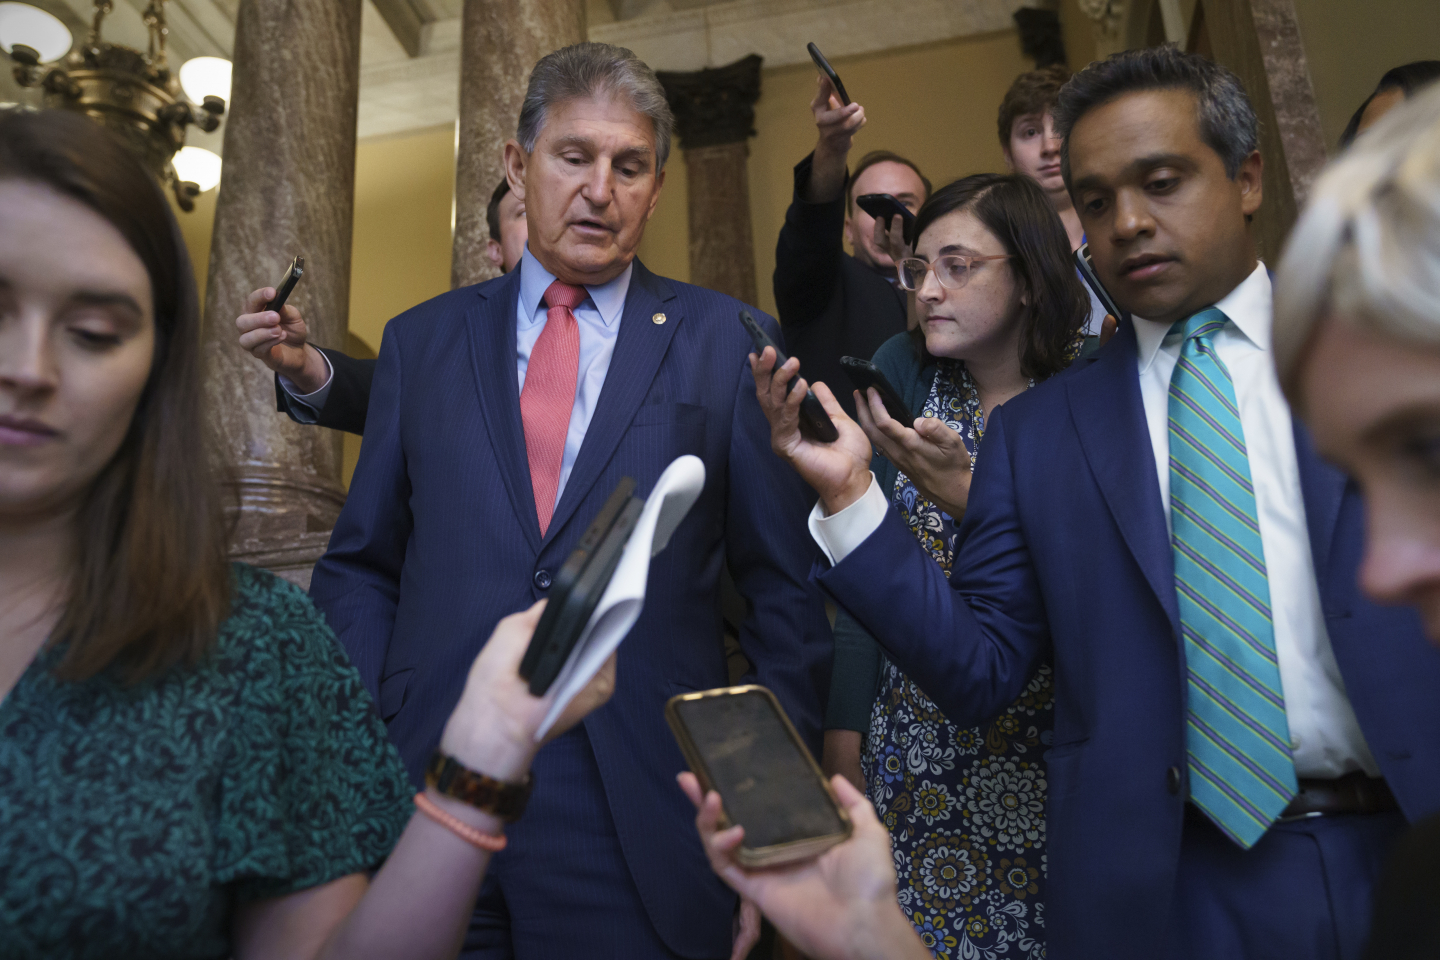 Manchin Saved the Senate -- and Our Republic (for Now)